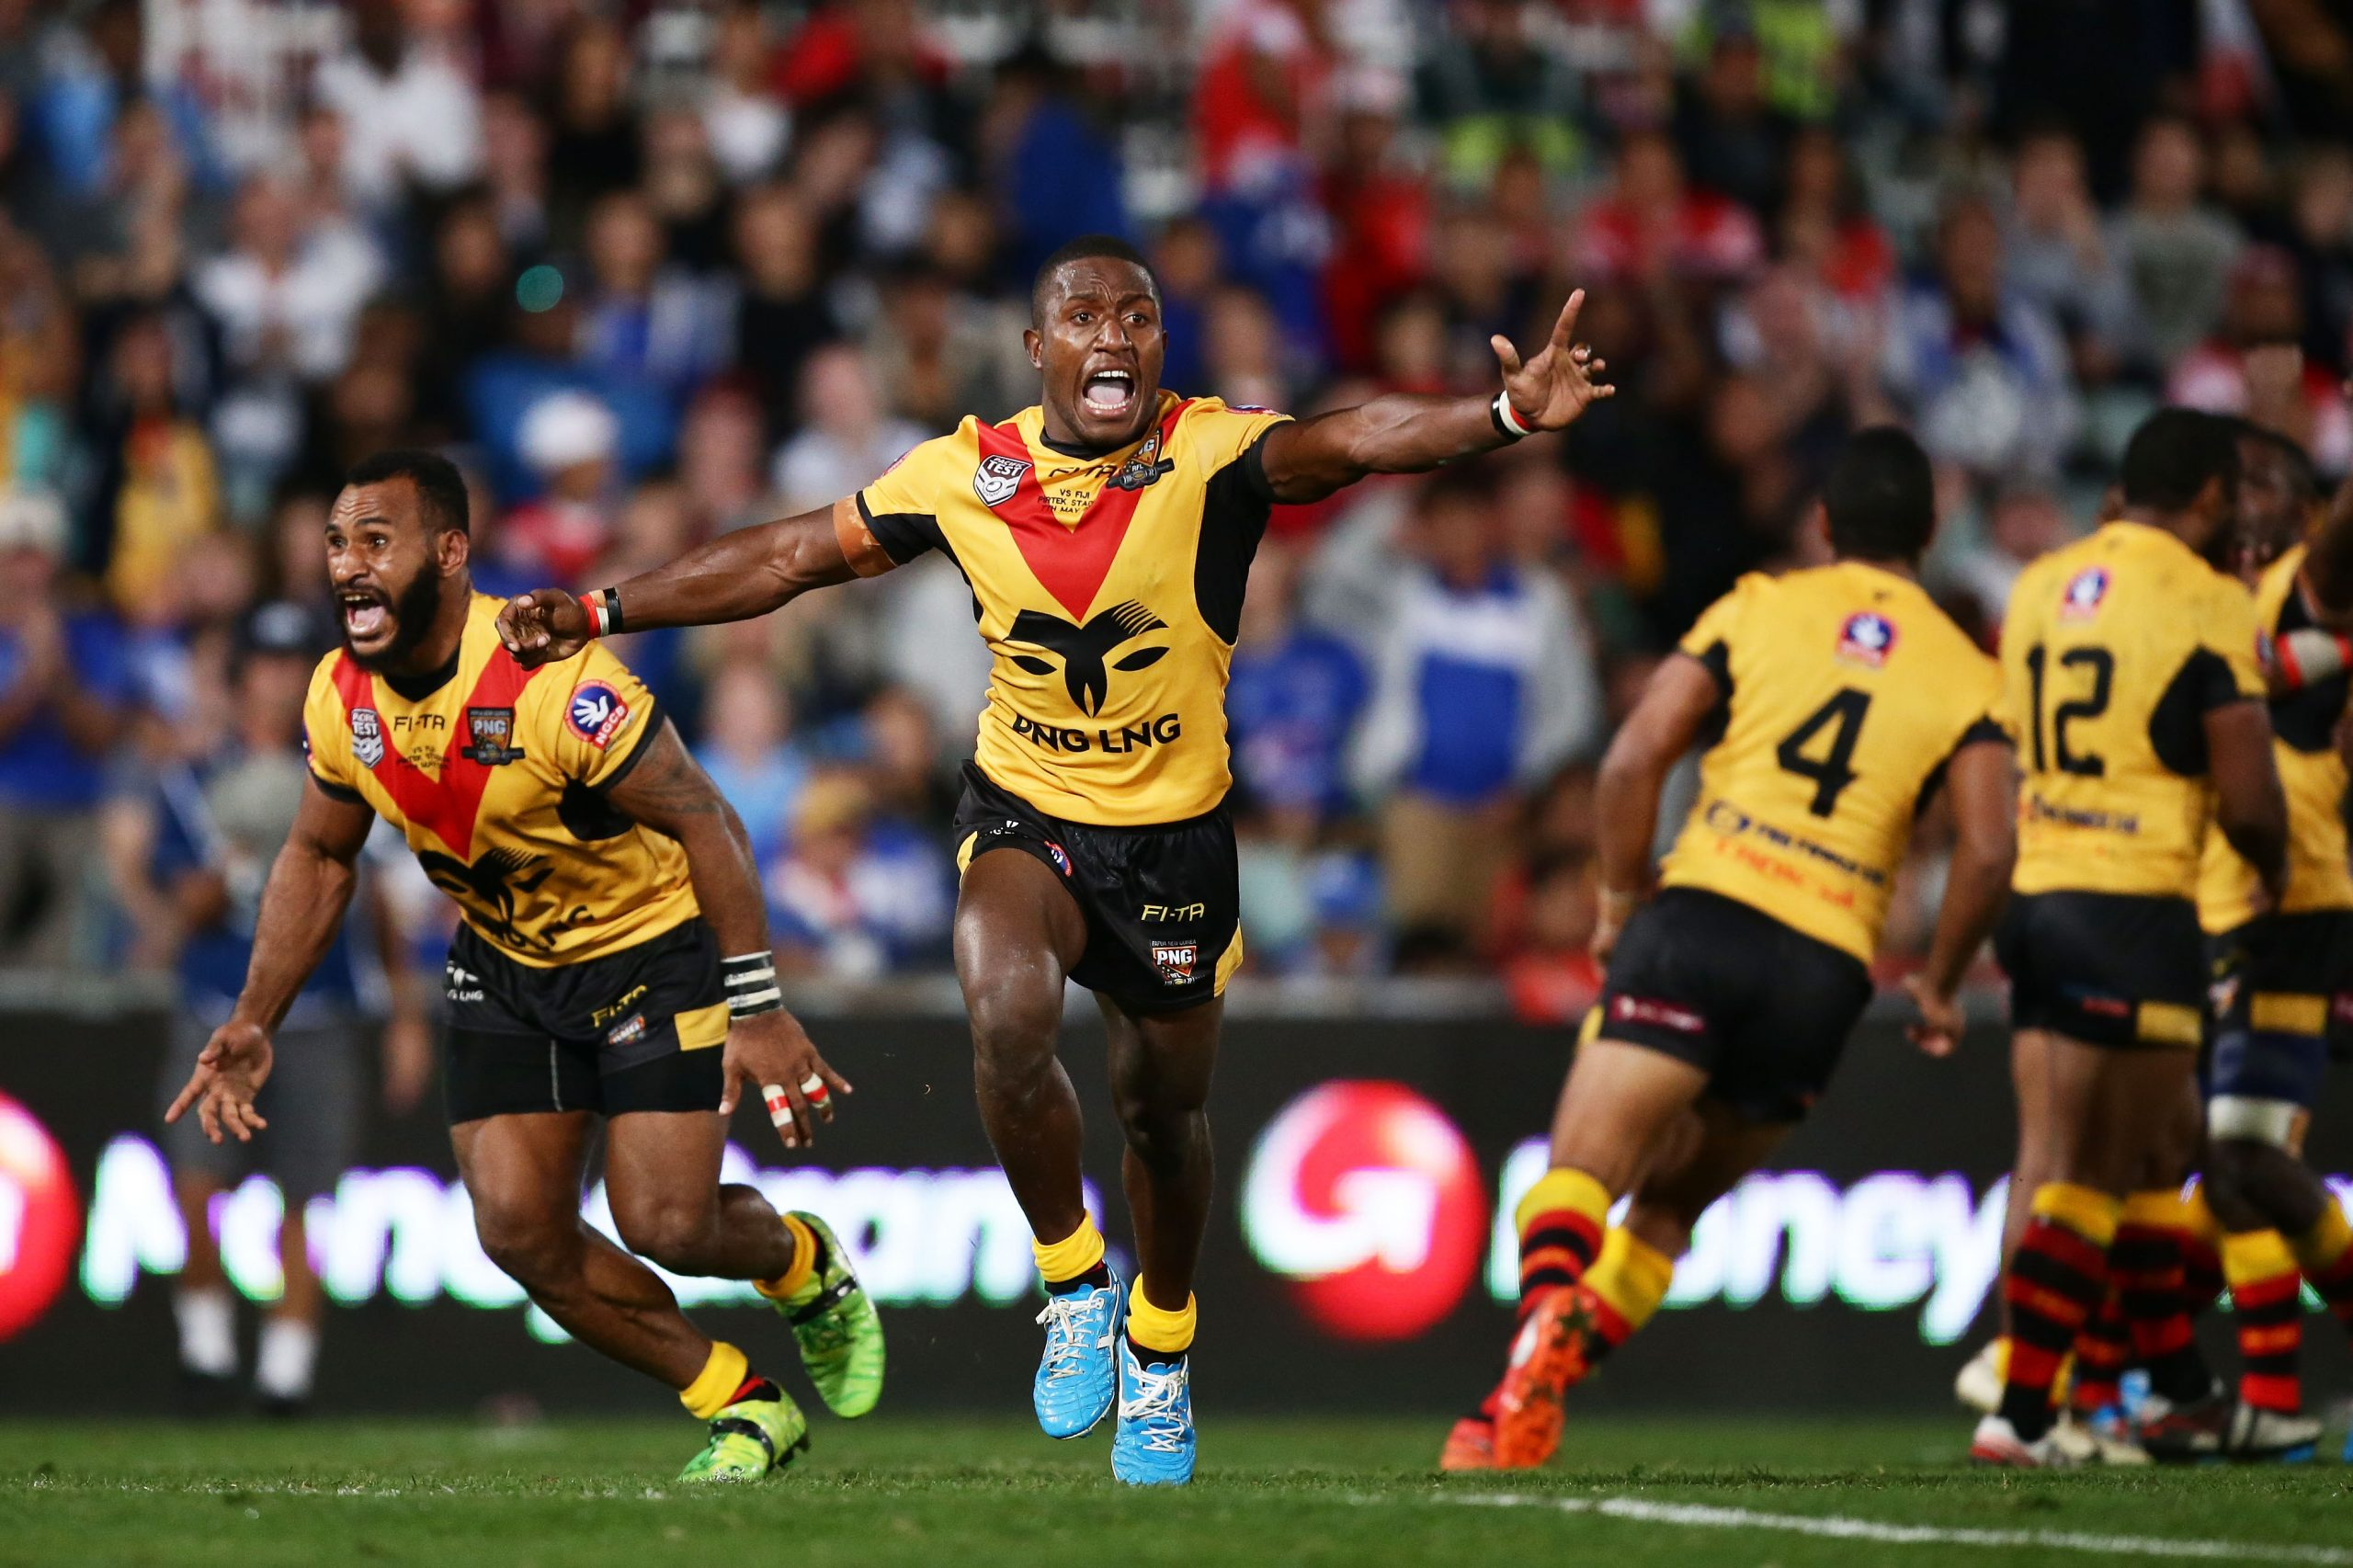 EMTV, FM100 and Telikom TV to cover the 2021 Rugby League World Cup in PNG